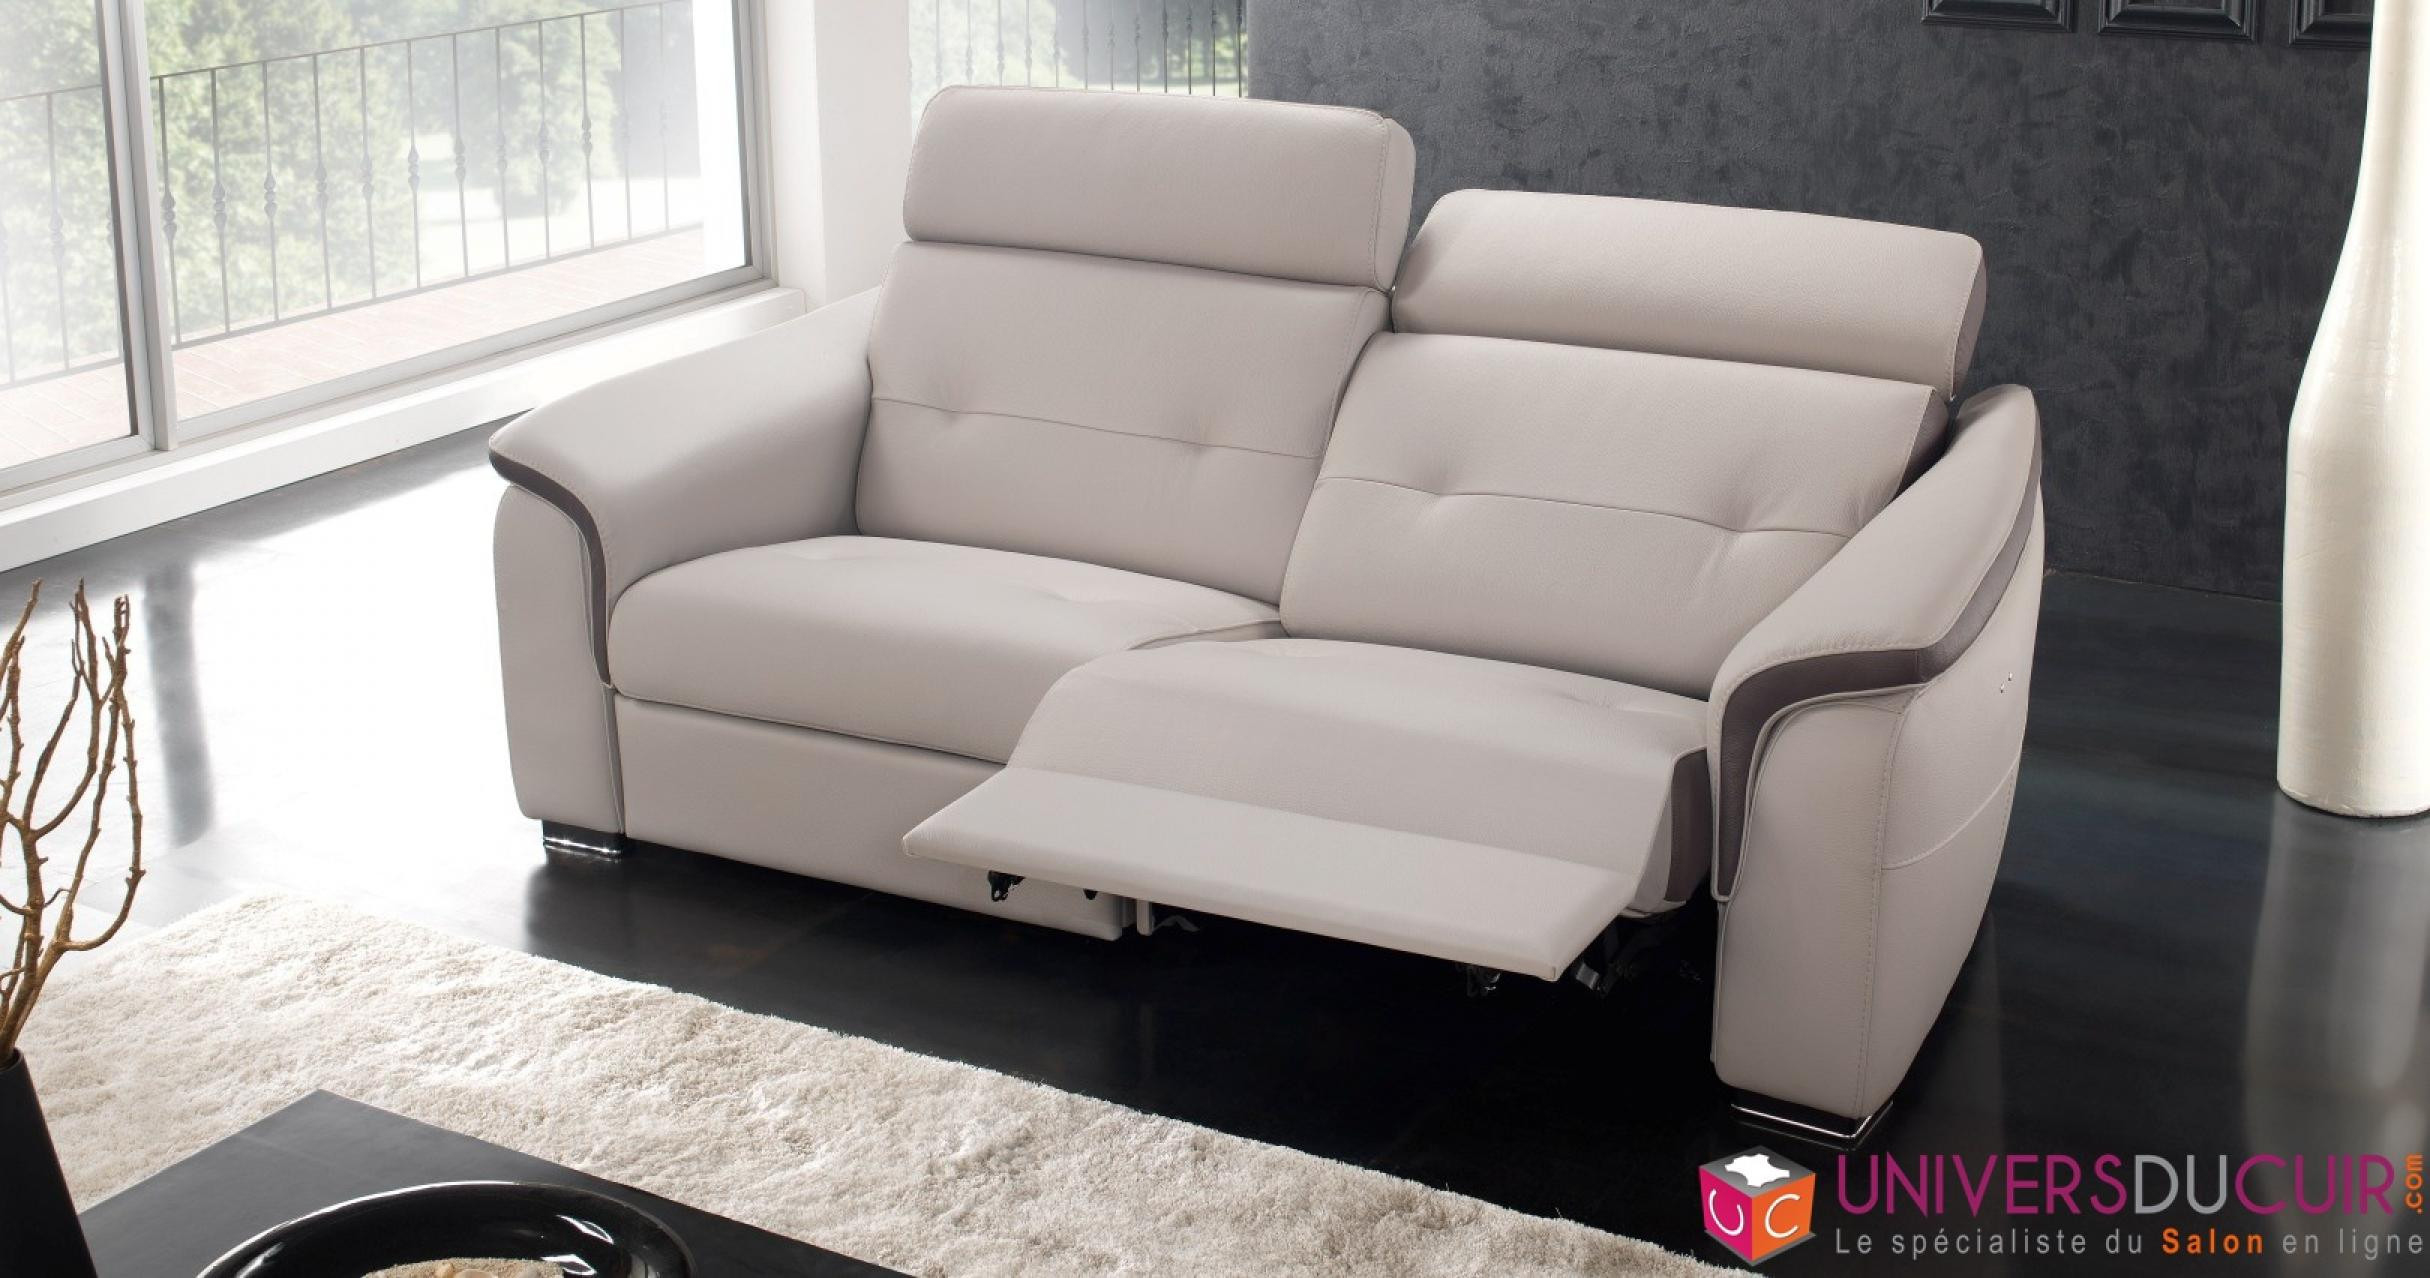 Conforama Canape Relax Luxe Collection Canap Et Fauteuil Relax Beautiful Canape Relax Electrique